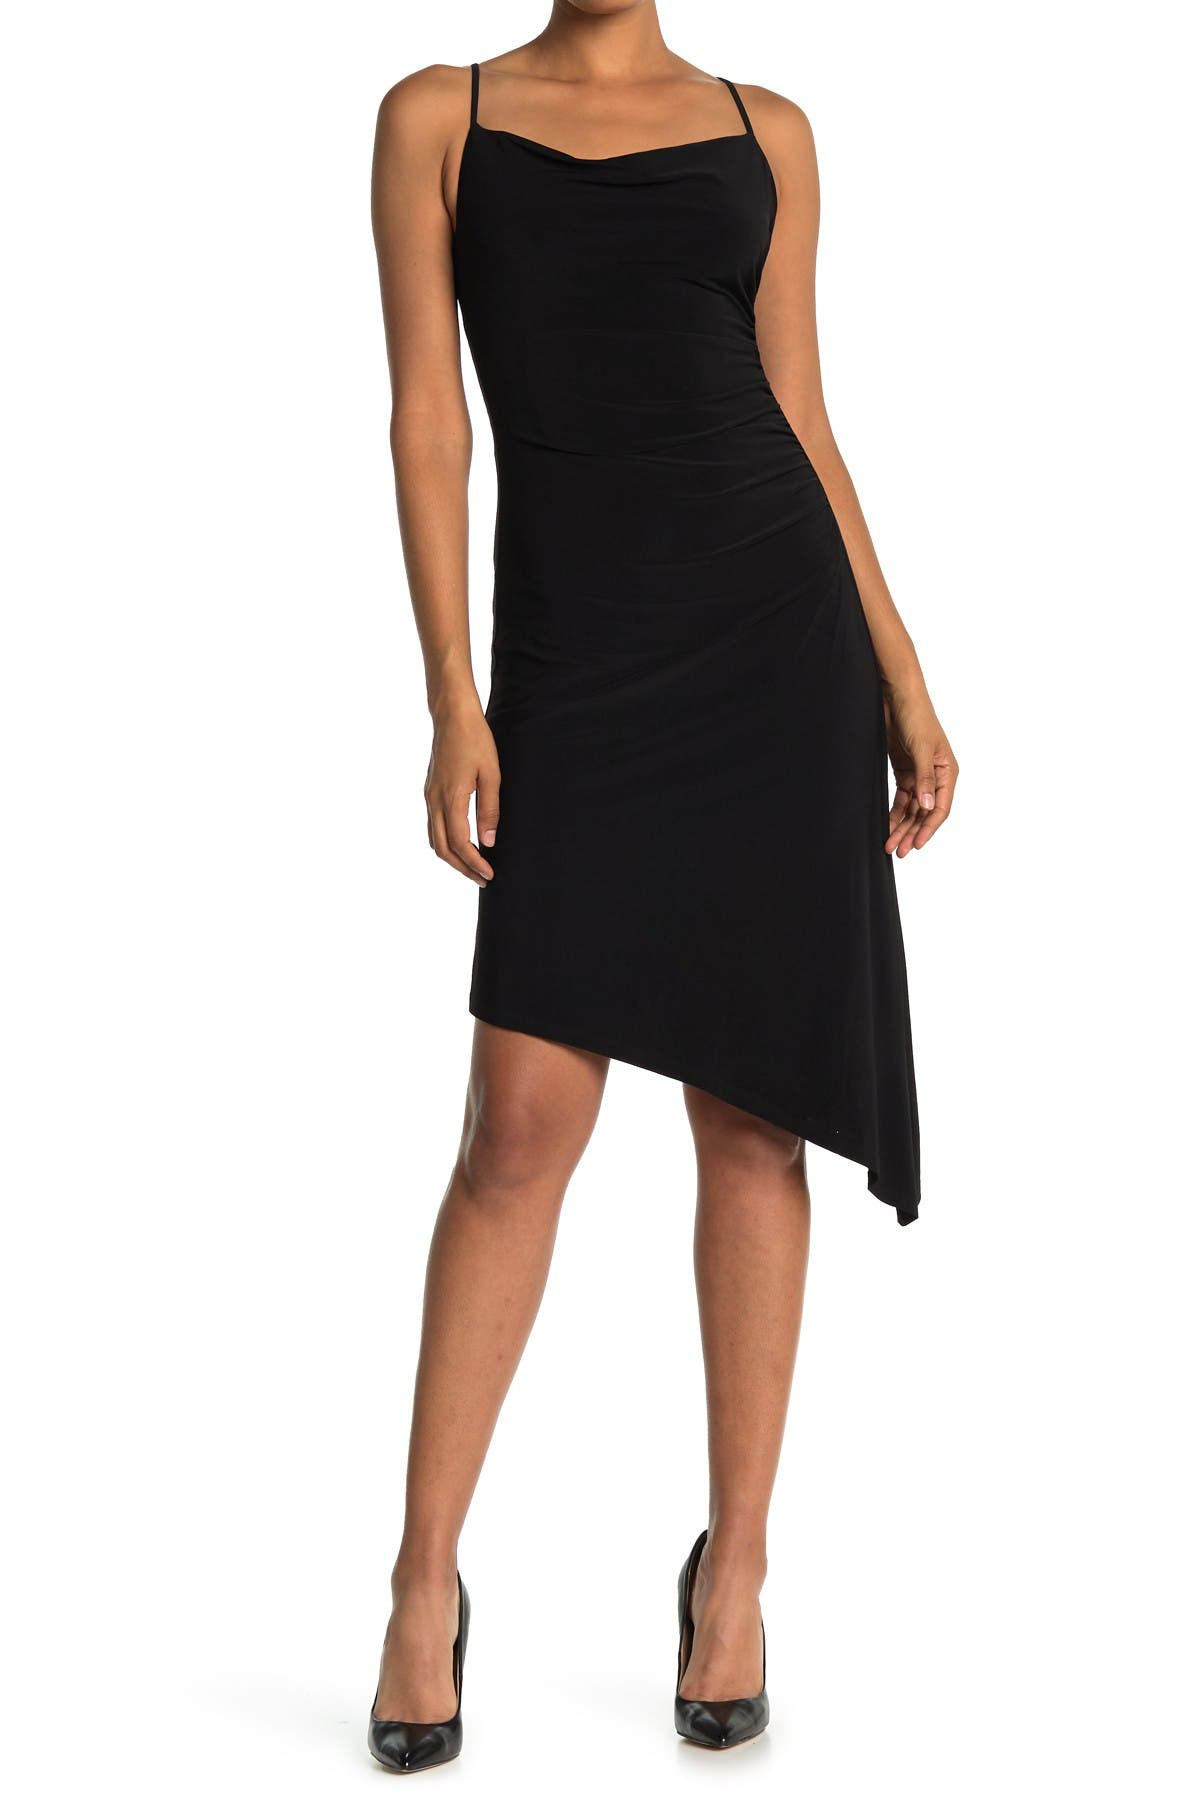 Image of Laundry By Shelli Segal Asymmetrical Cowl Neck Slip Dress